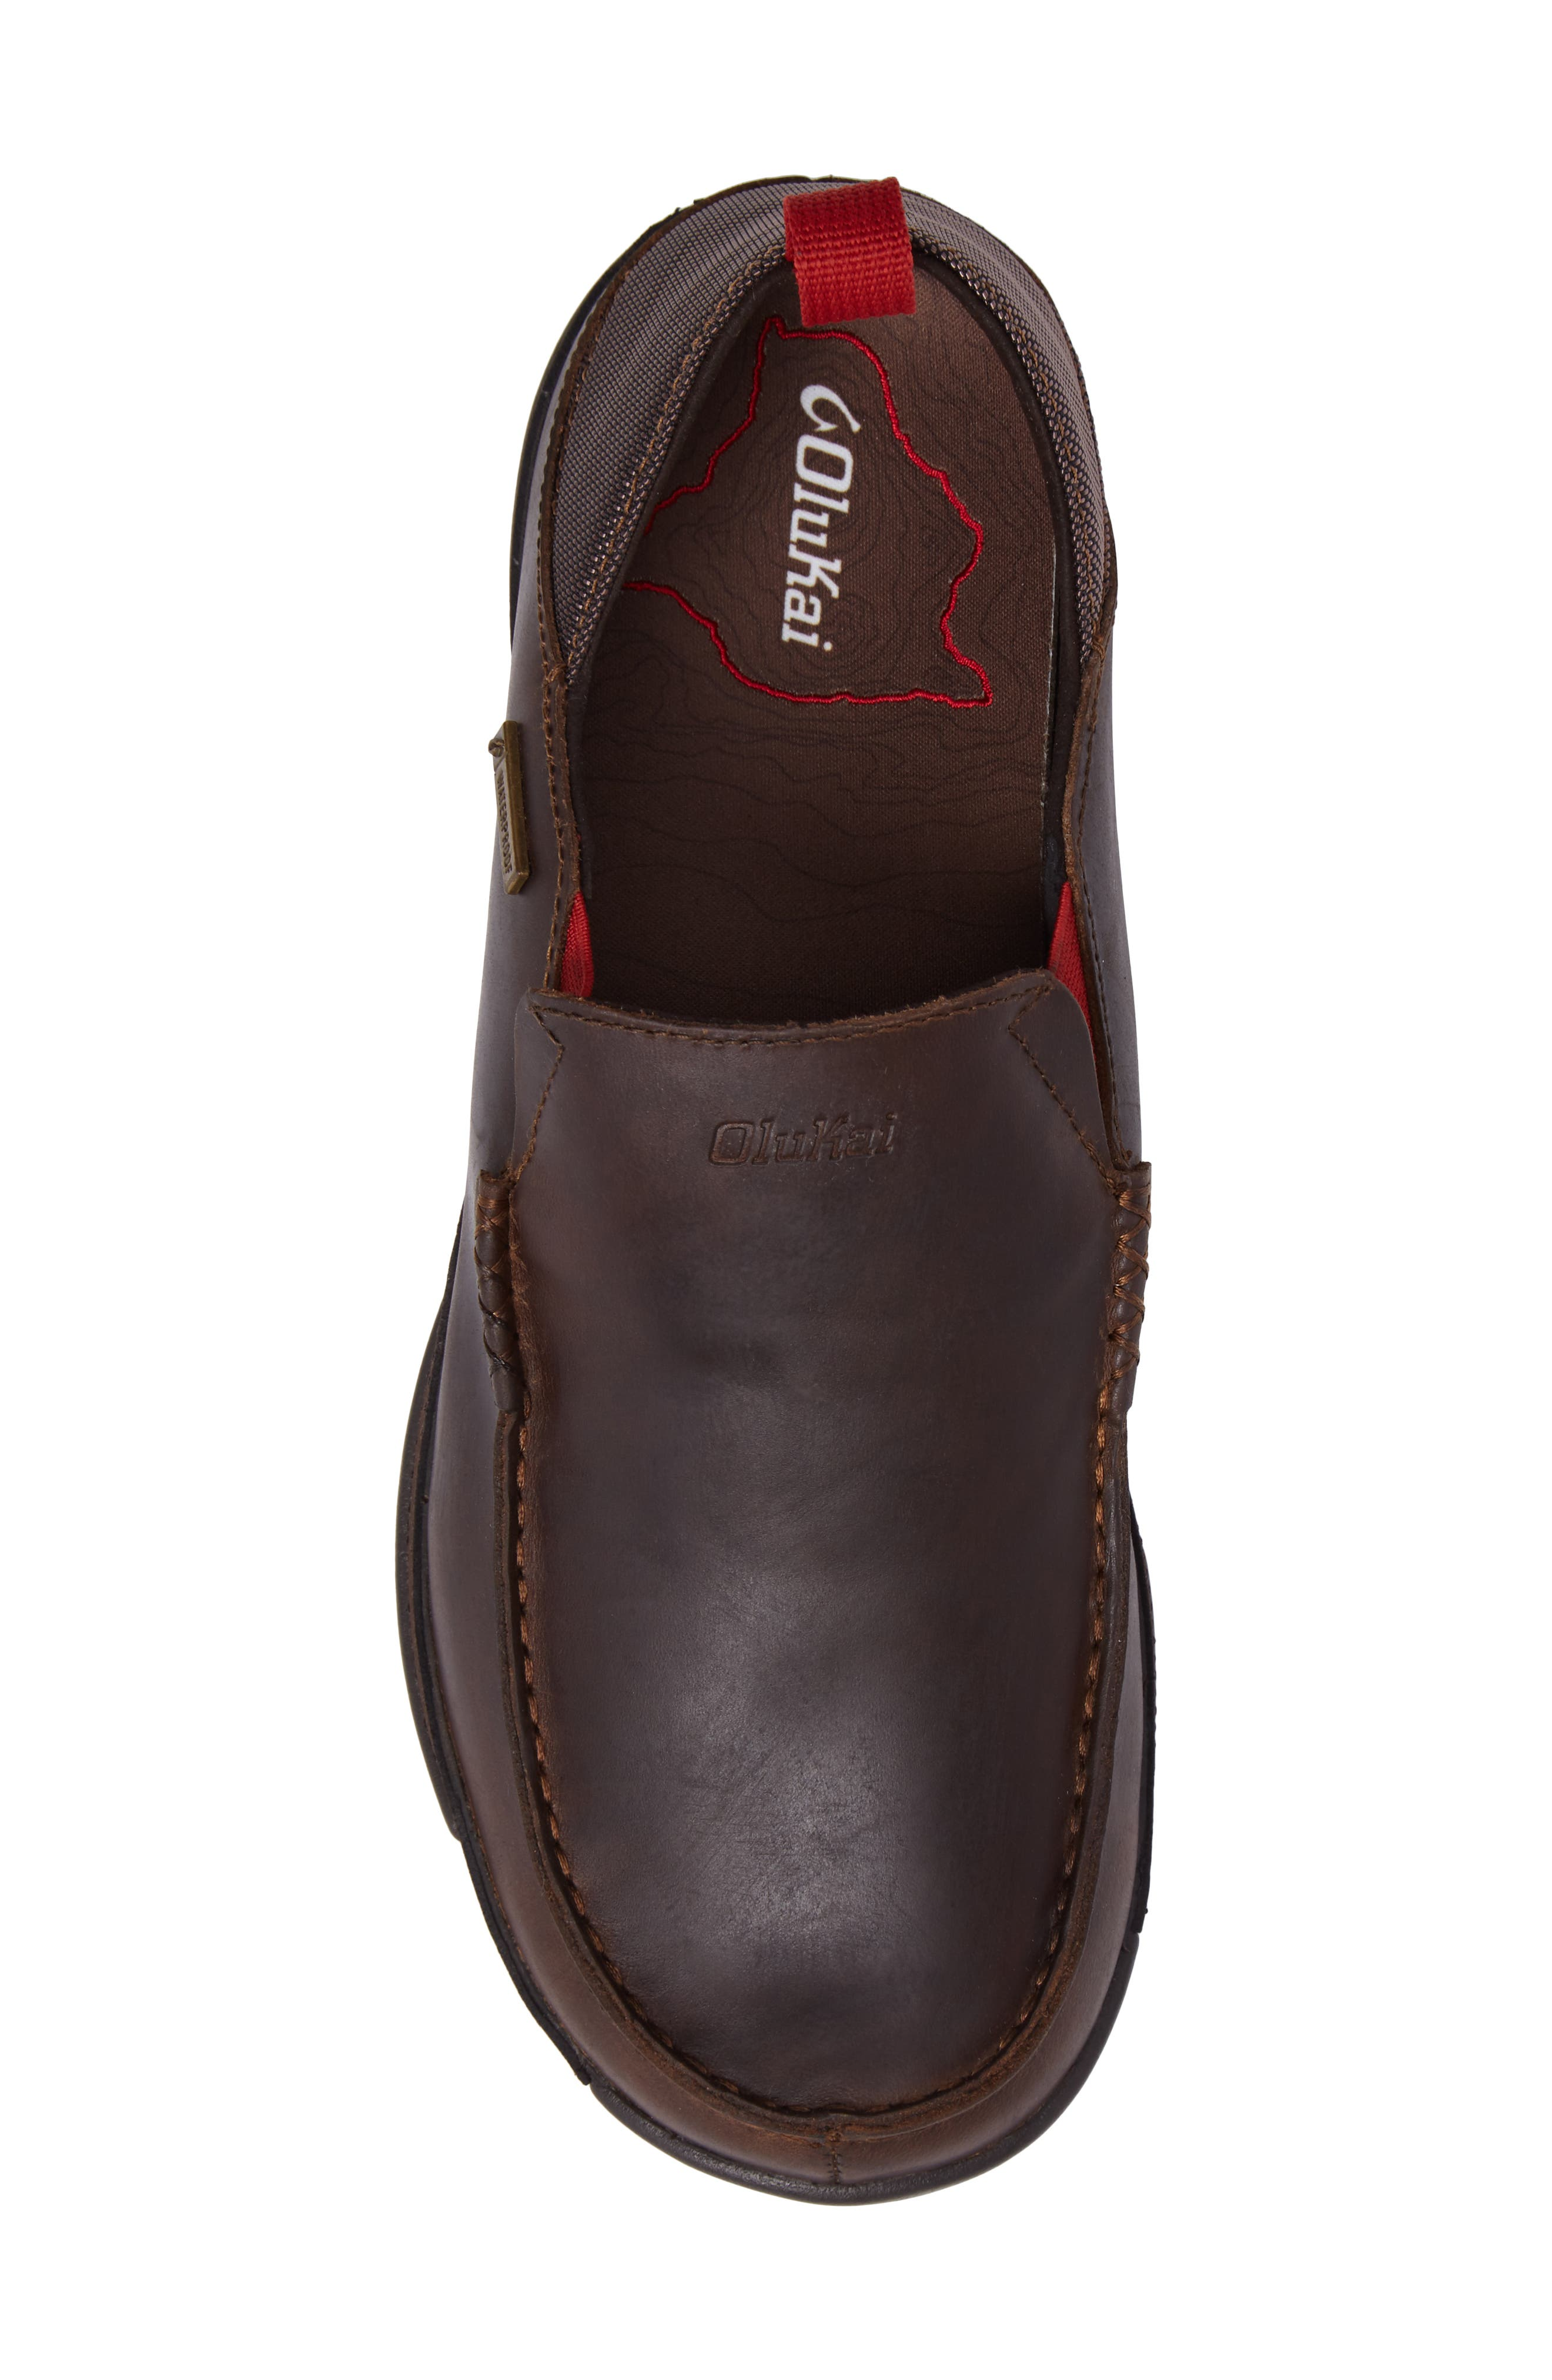 Na'I Collapsible Waterproof Slip-On,                             Alternate thumbnail 5, color,                             Carob/ Dark Wood Leather